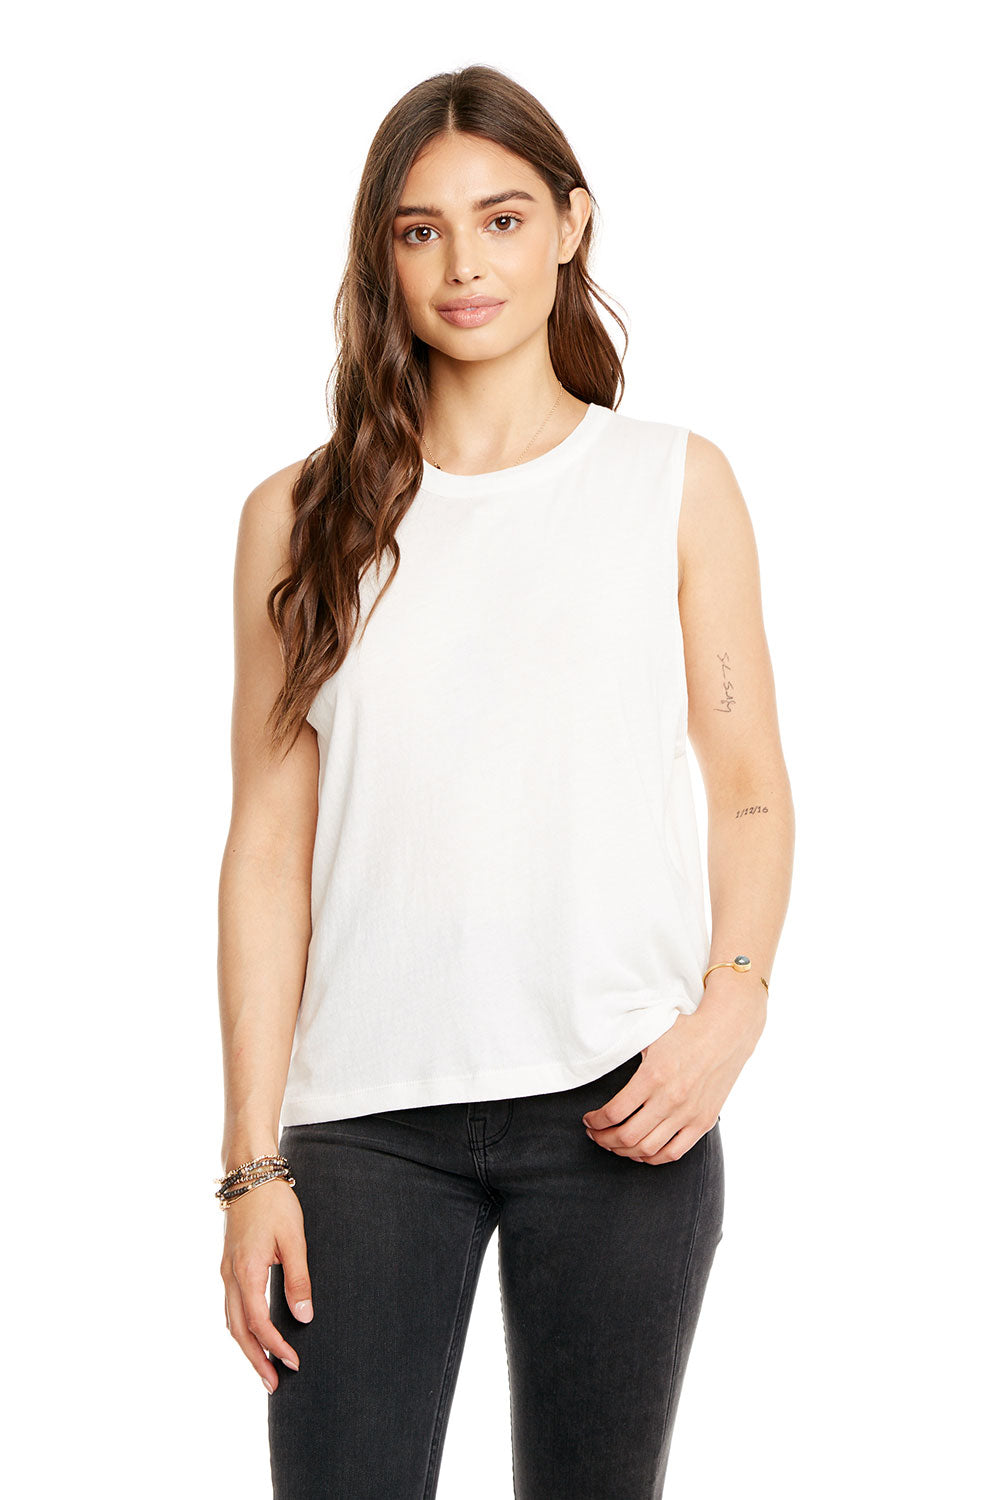 GAUZY COTTON CROPPED HI-LO MUSCLE TANK, WOMENS, chaserbrand.com,chaser clothing,chaser apparel,chaser los angeles